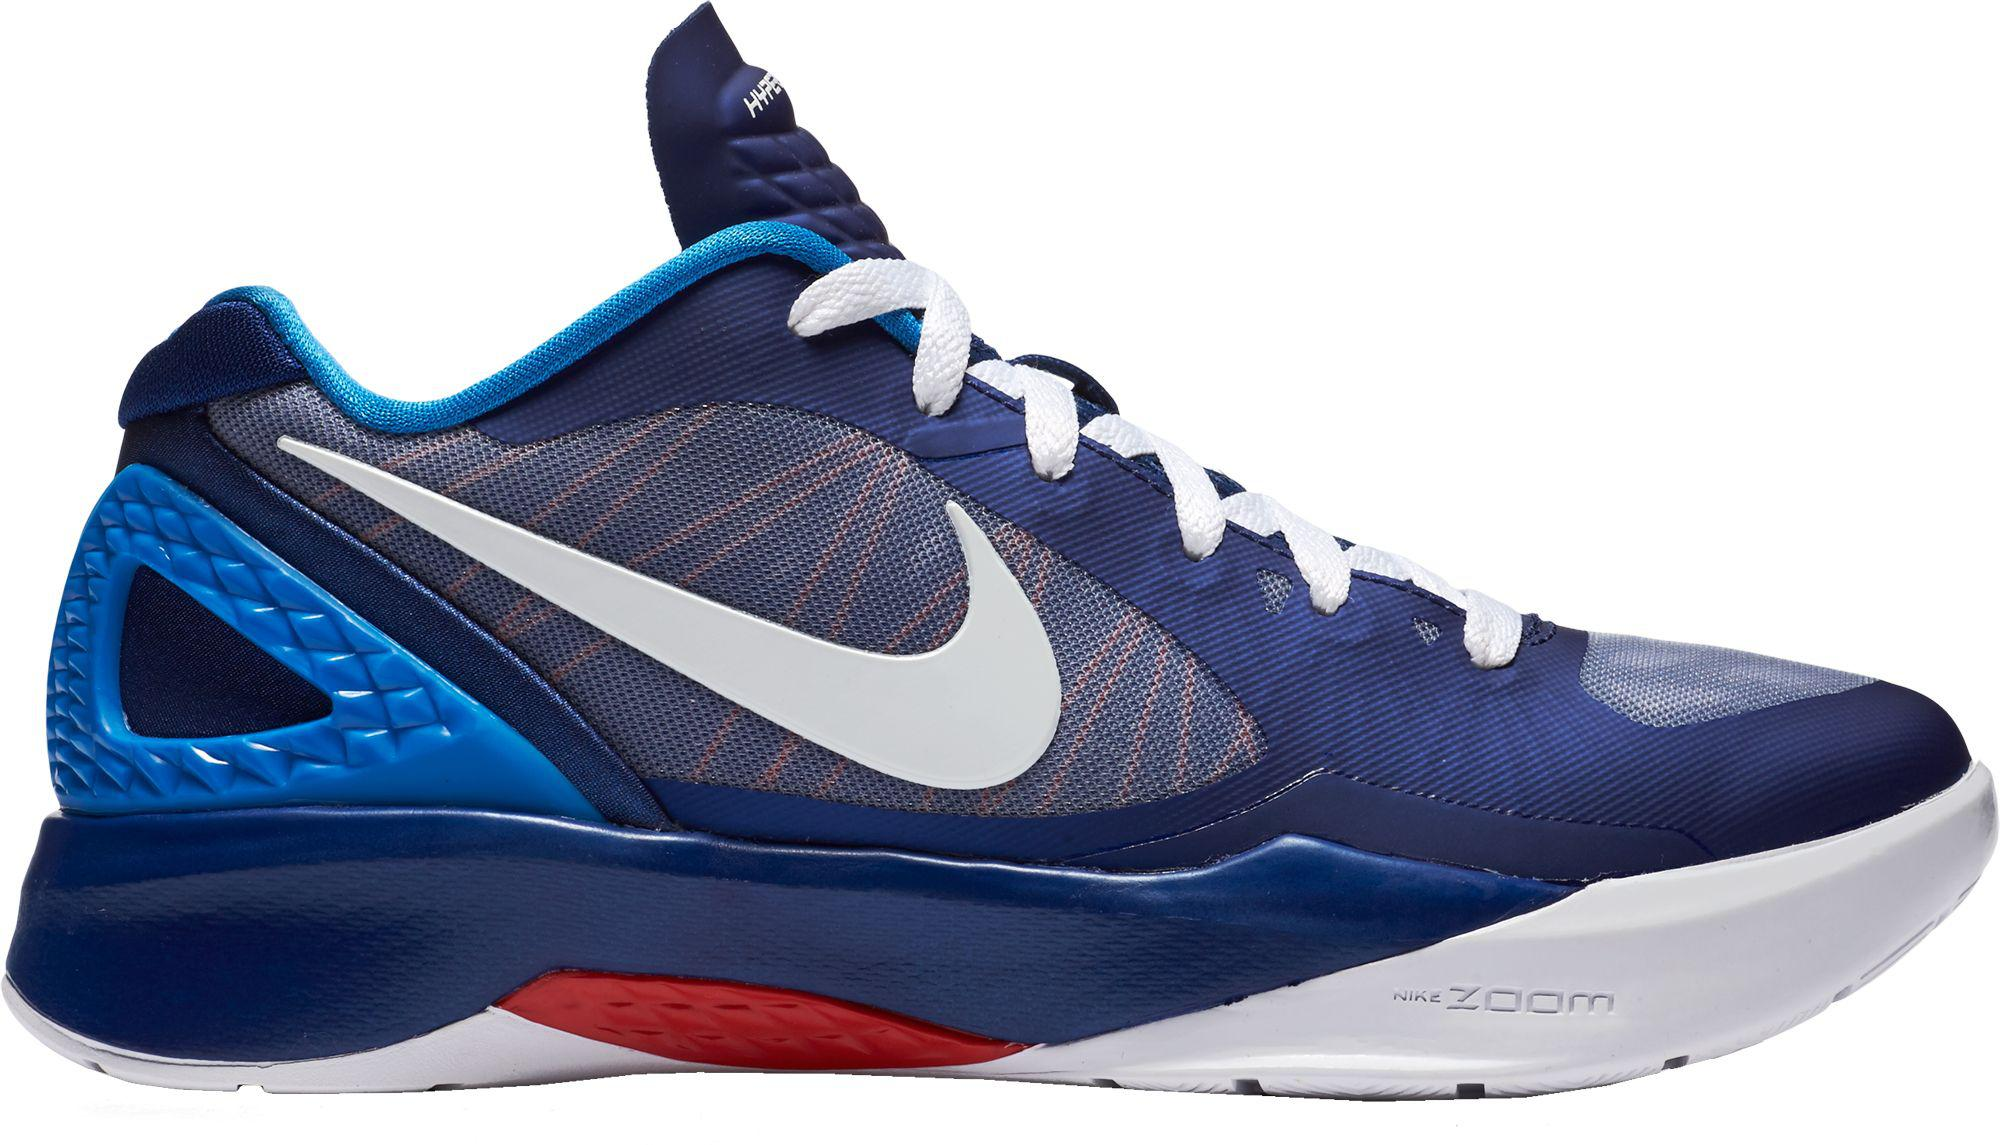 Nike Hyperstrike Volleyball Shoes